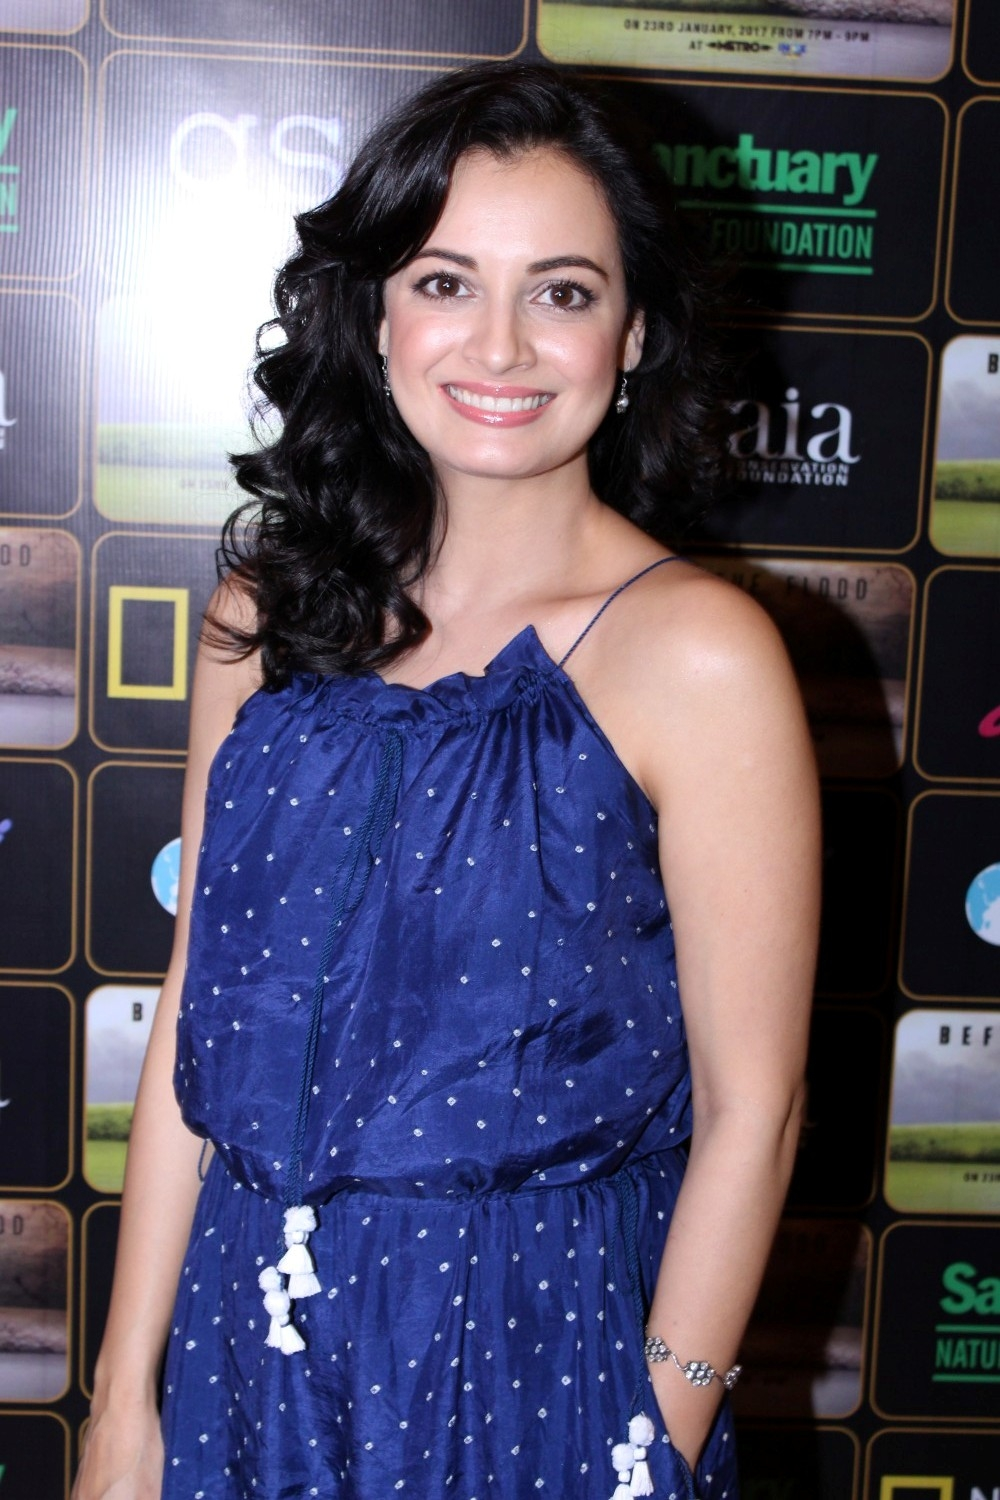 Mumbai: Actress Dia Mirza during the screening of Leonardo DiCaprio-starring climate change documentary Before the Flood in Mumbai on Jan 23, 2017. (Photo: IANS)